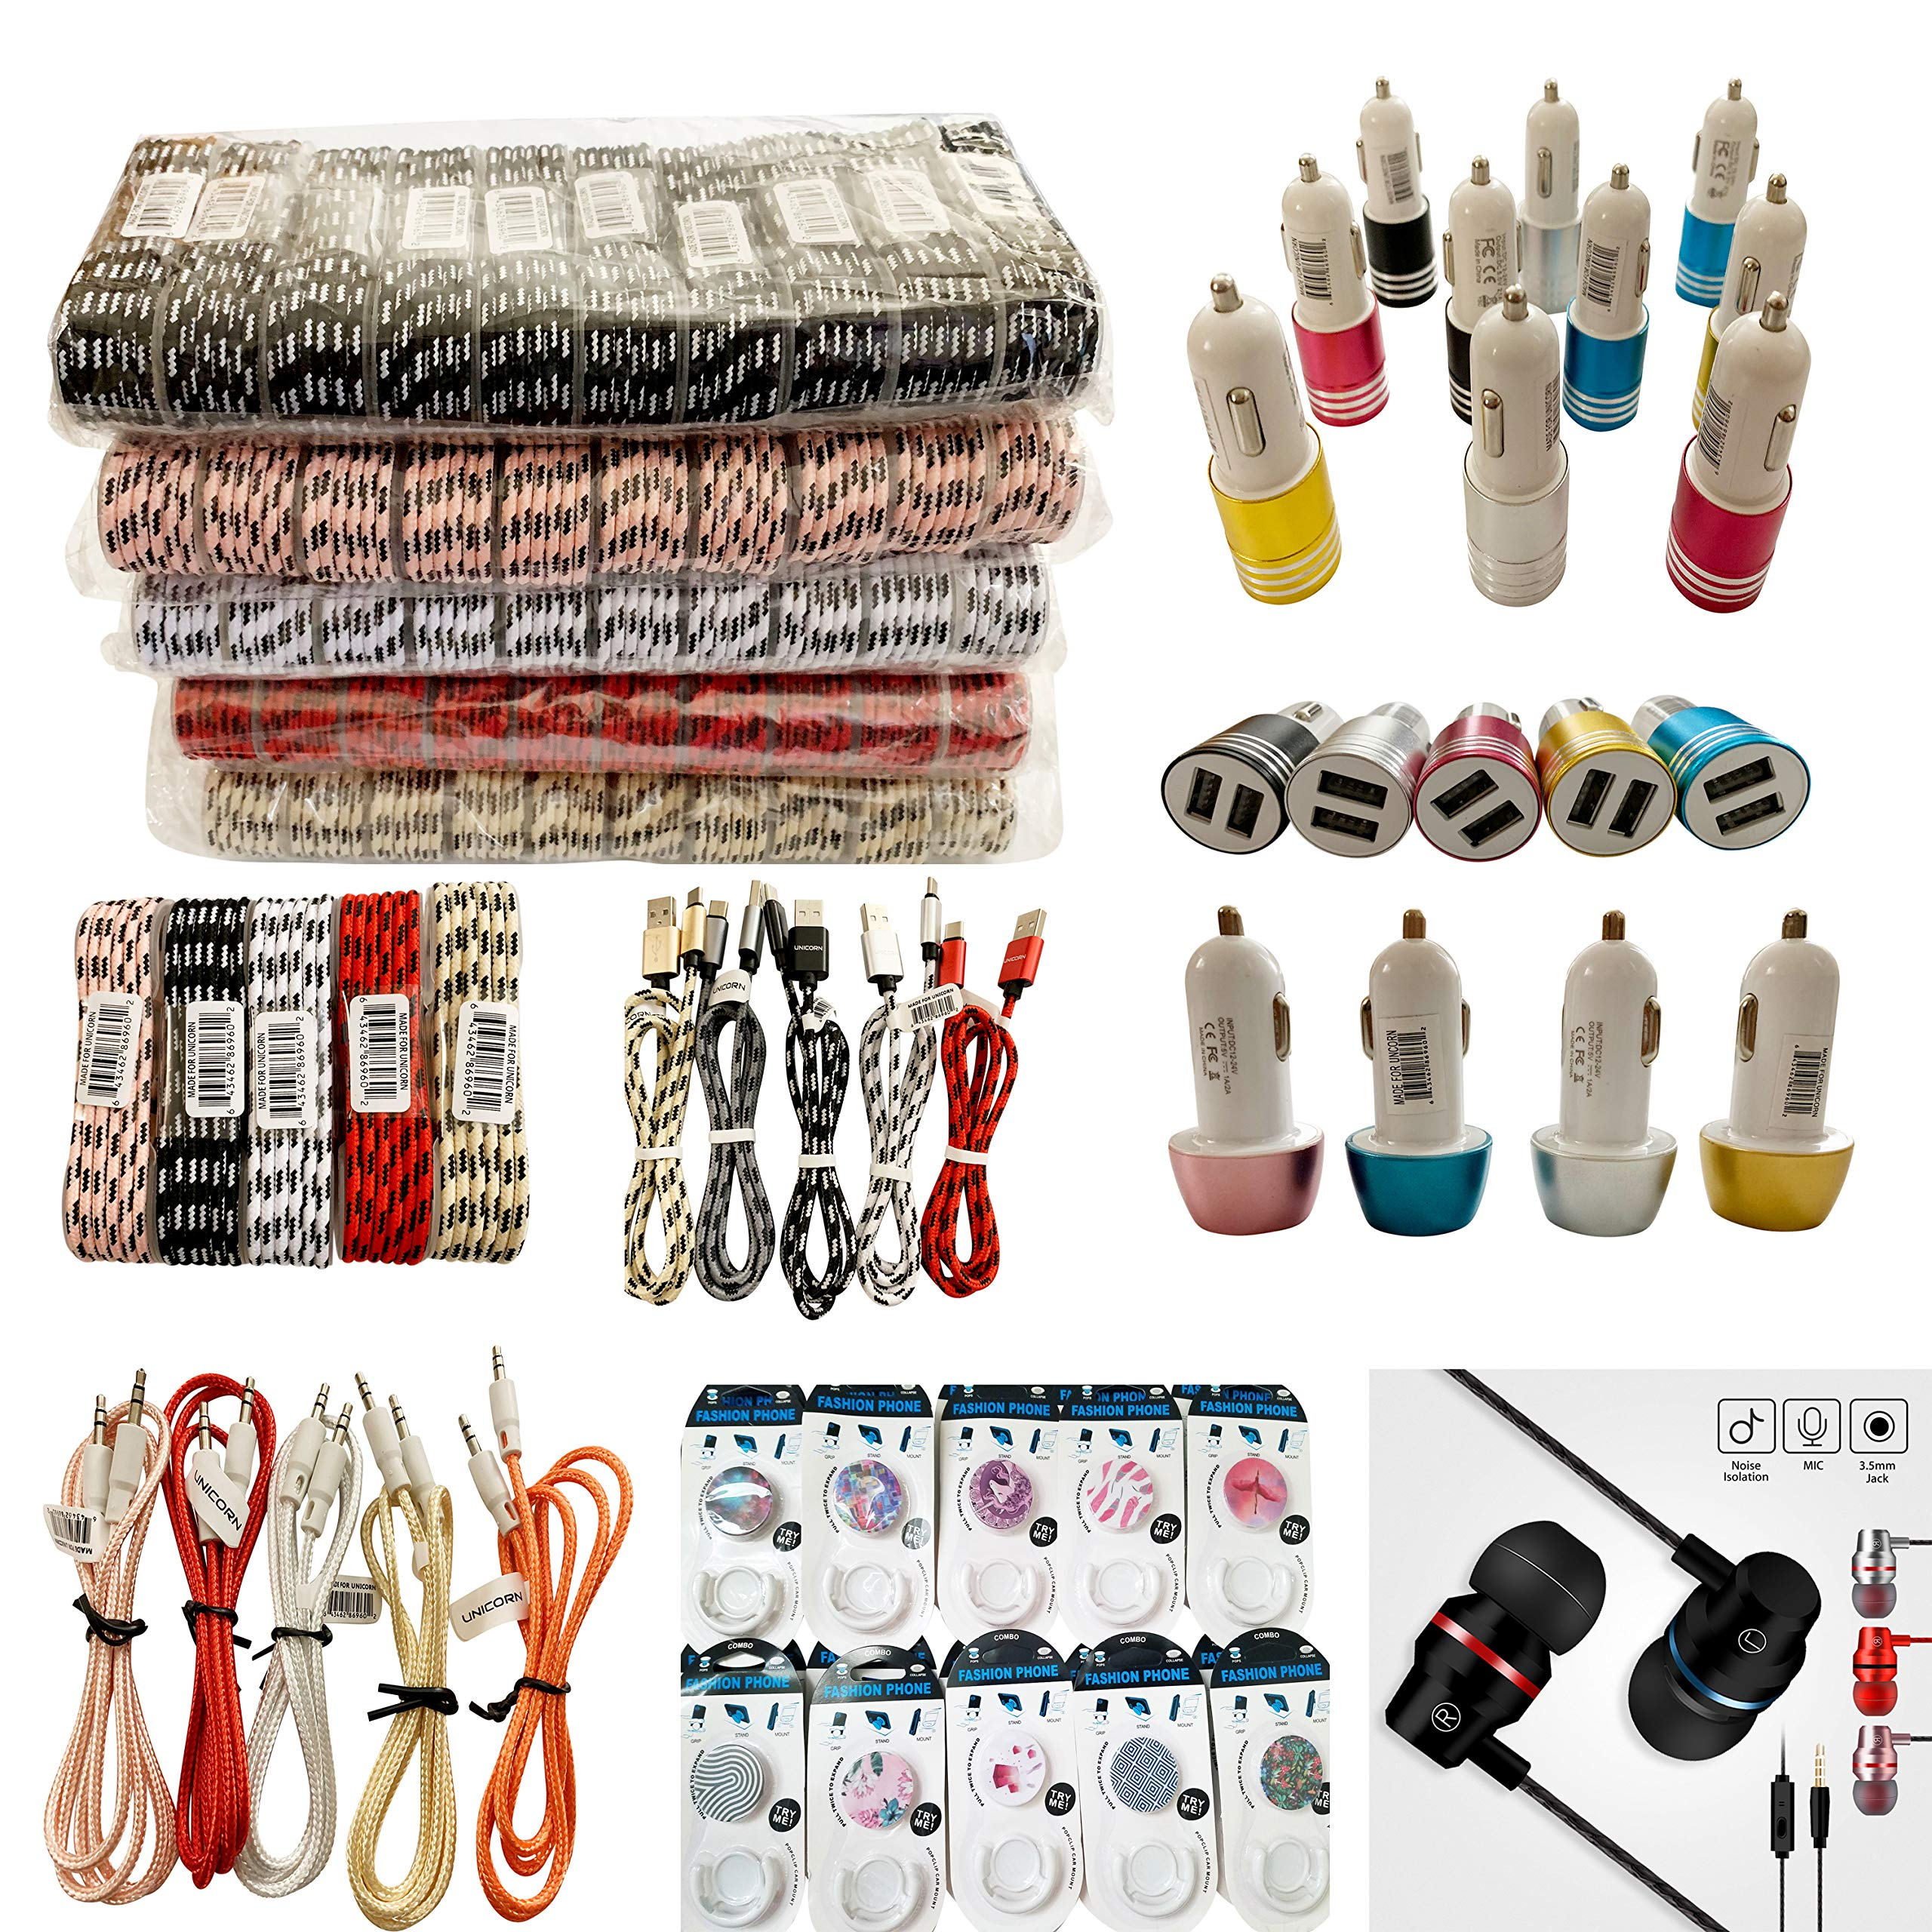 (100-Packs) Unicorn's Premium Cell Phone Accessories Mix Lot (Braided Charging Cables, Car Chargers, Aux Cables, Earphones, Phone Popup Holders) Wholesale Bulk Lot